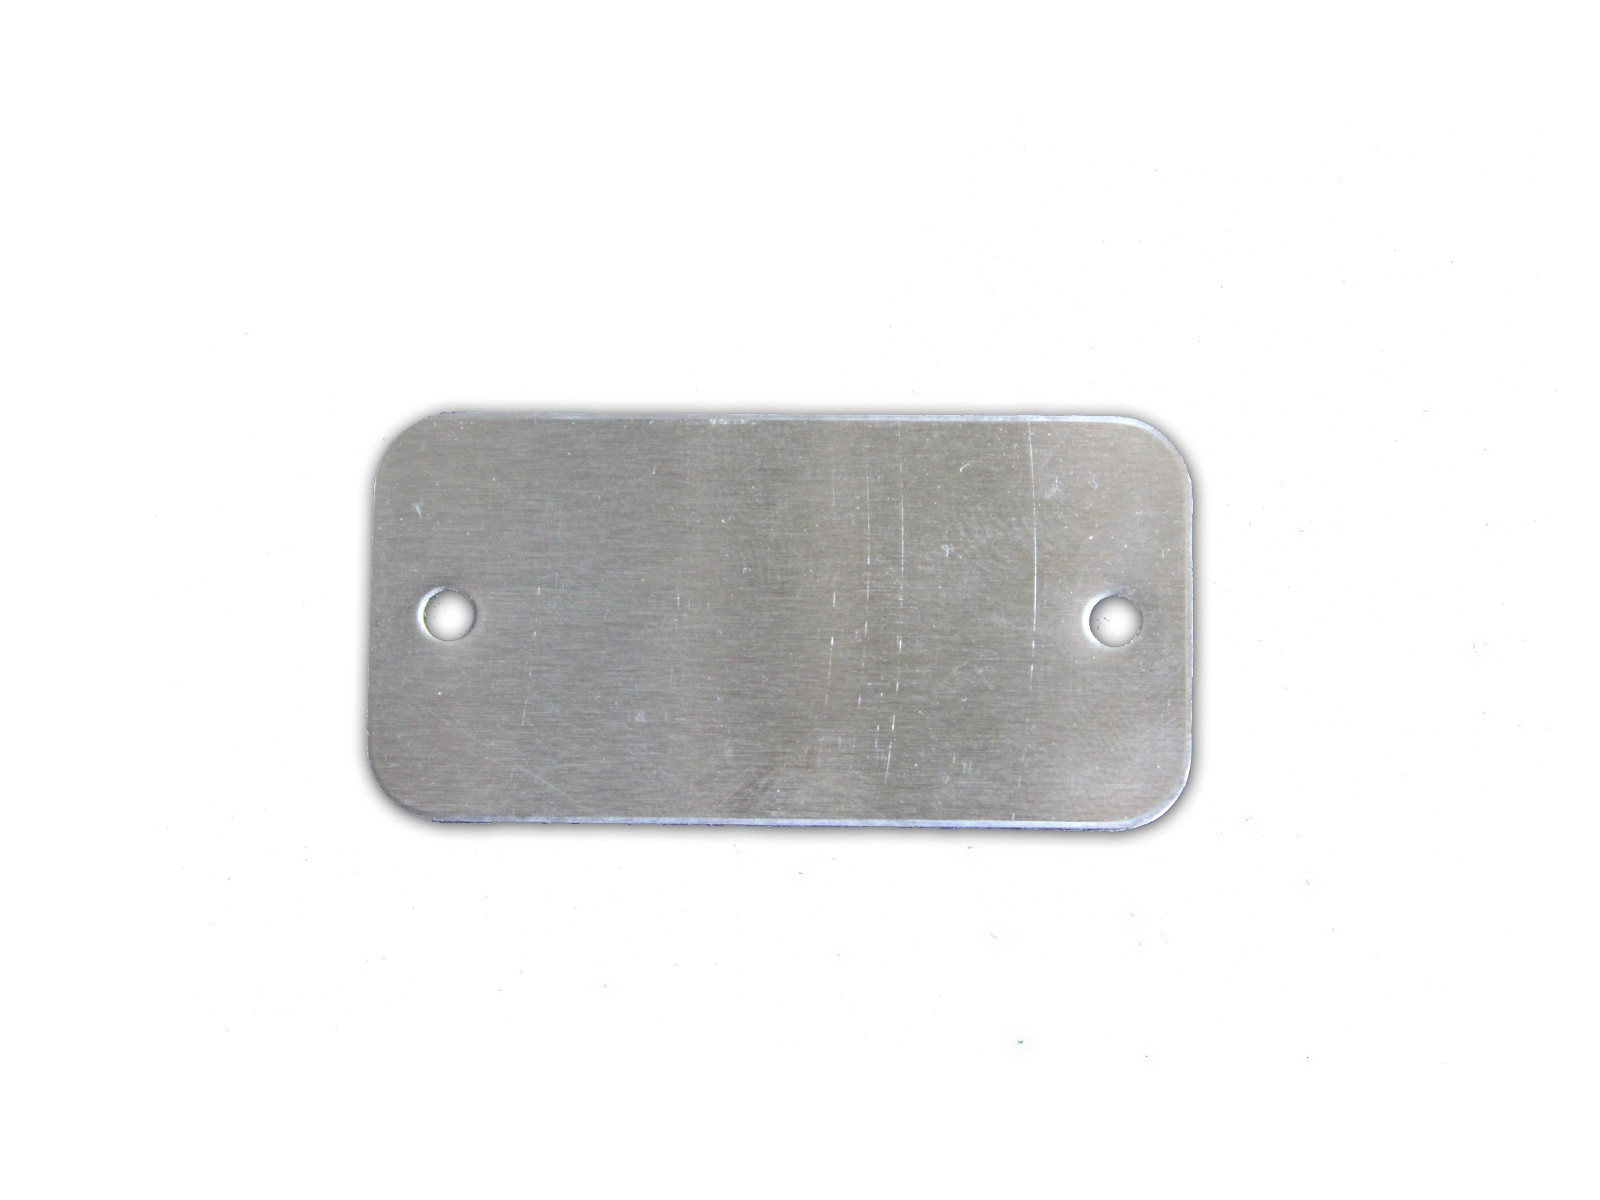 "1"" x 2"" Cable Tag with two 1/8"" Holes, #304 SS"